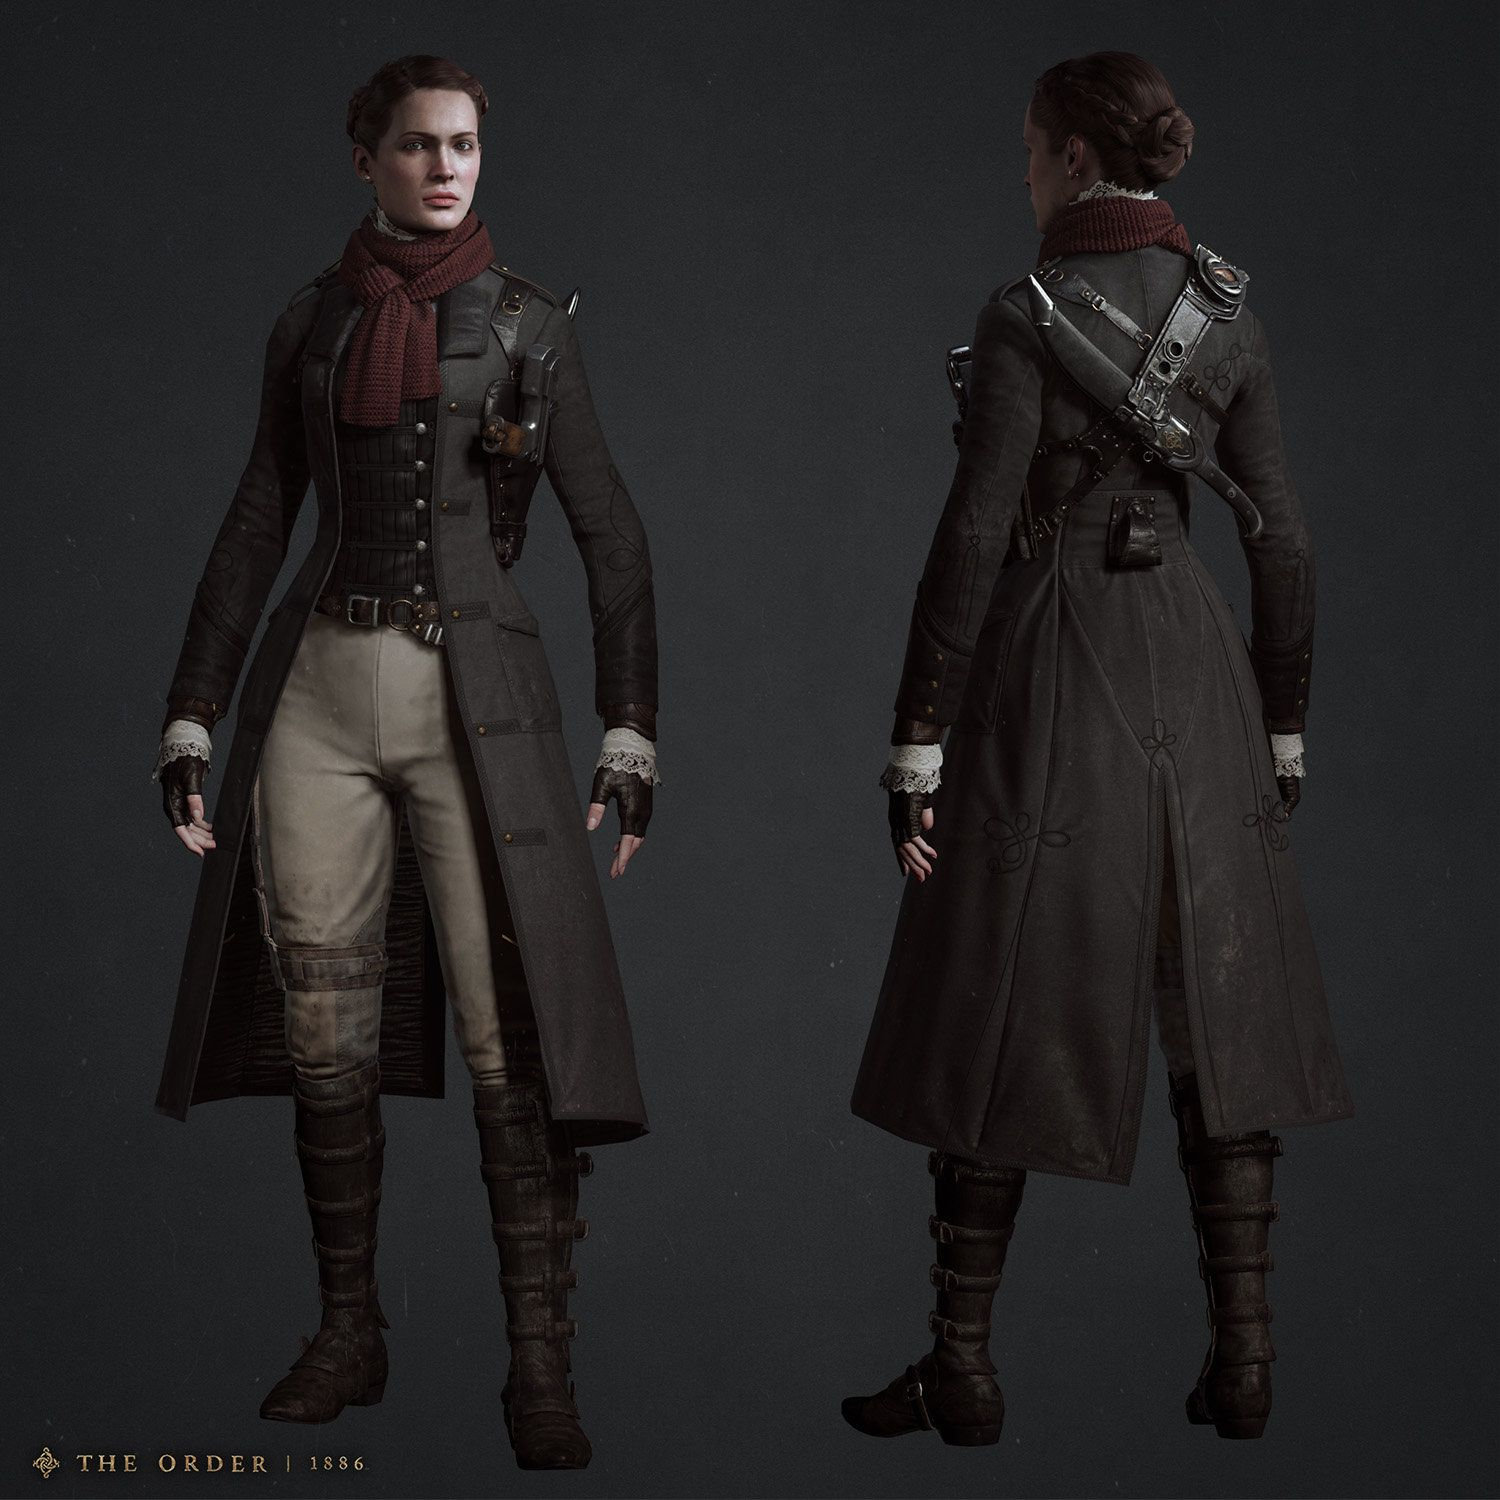 Character Costume Design Tutorial : Isabeau infiltration costume hisae jo watanabe on